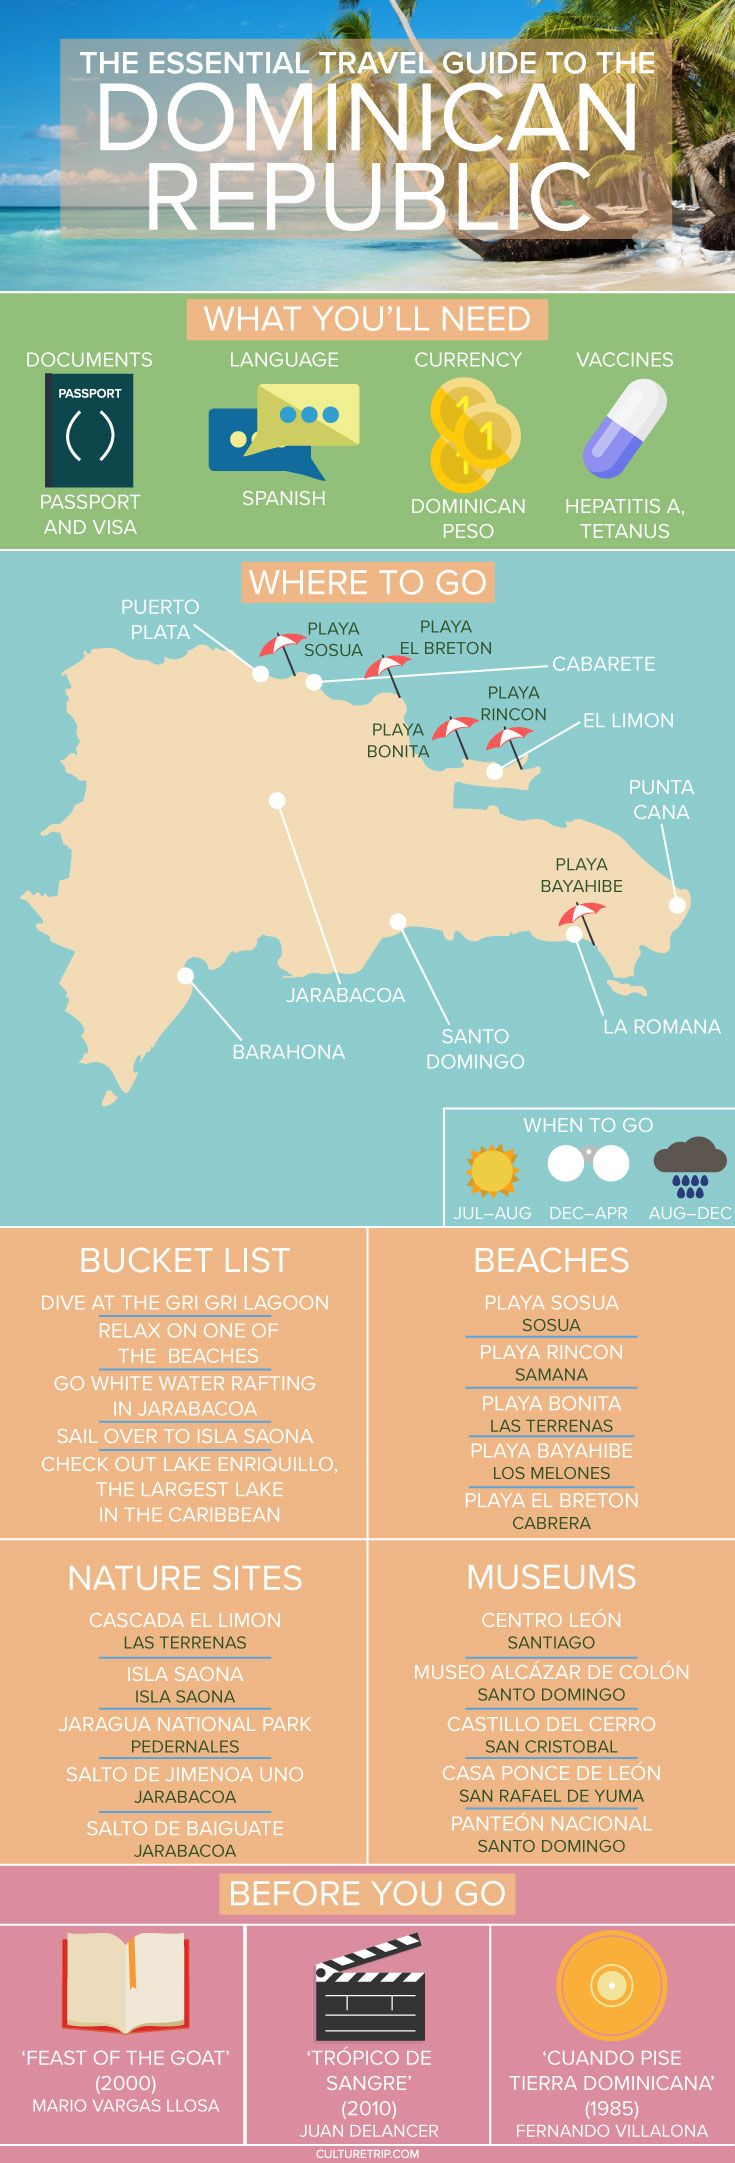 The Essential Travel Guide To The Dominican Republic (Infographic) The Essential Travel Guide to the Dominican Republic (Infographic) Tourism tourism dominican republic